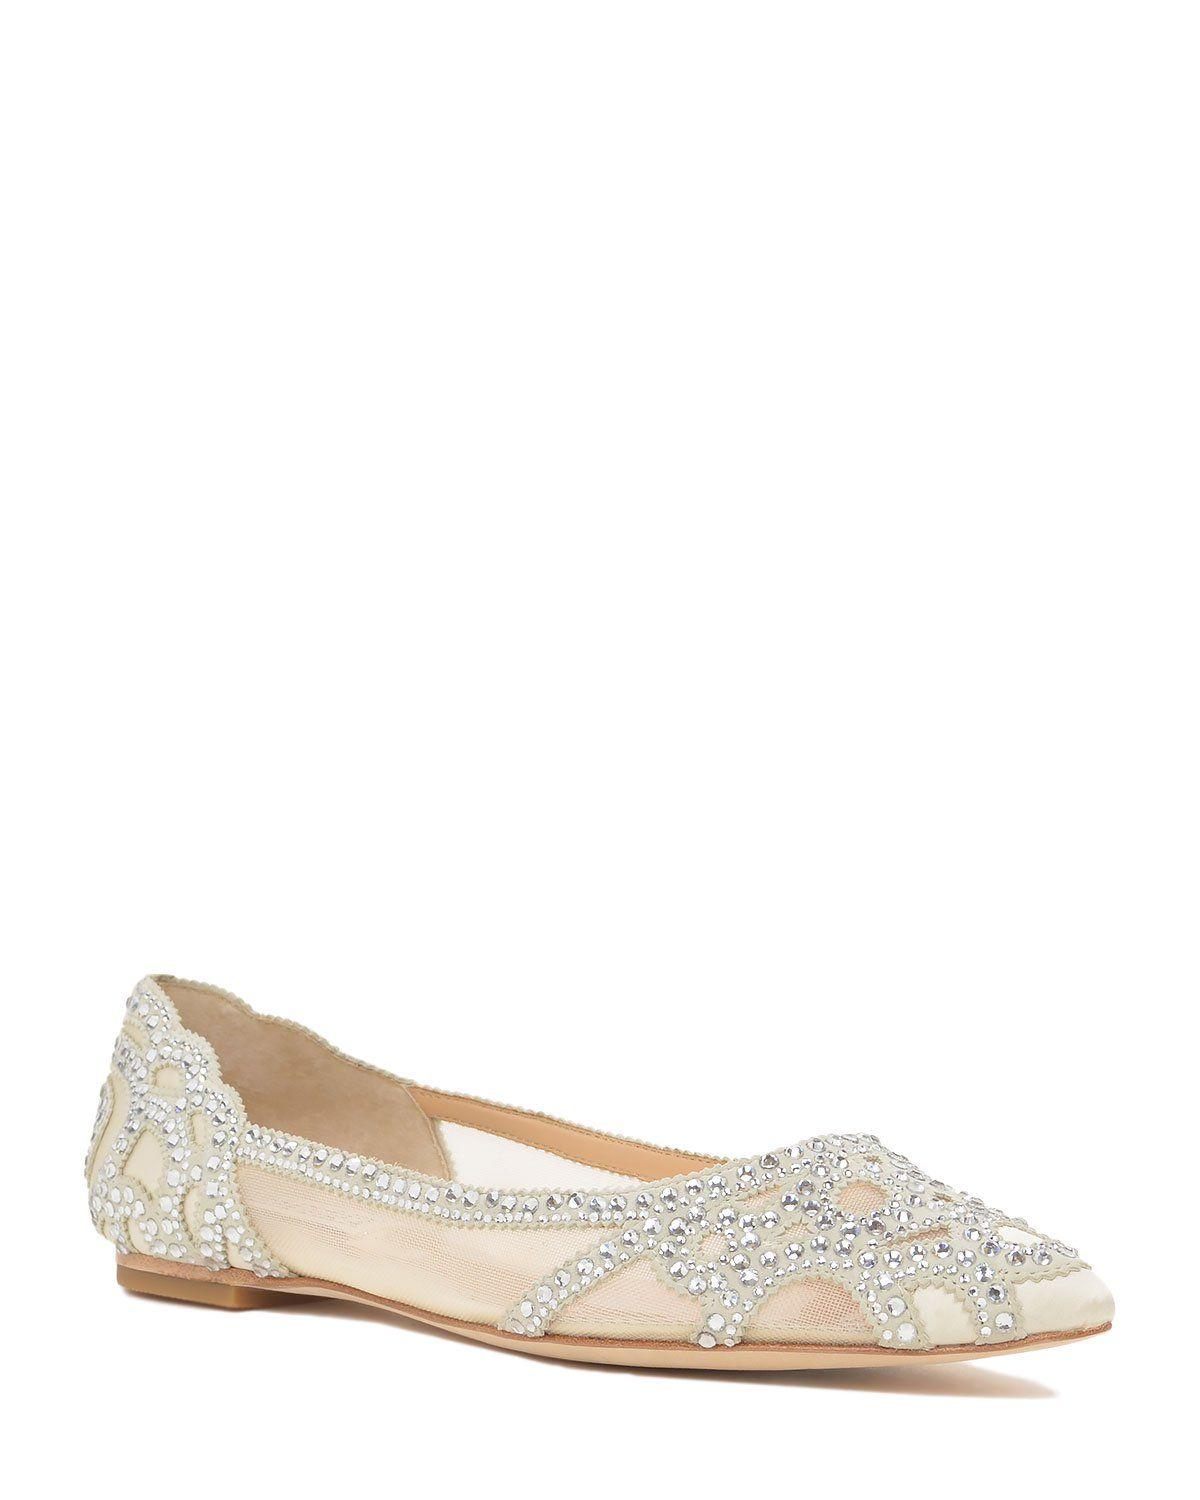 Badgley Mischka Gigi Pointed Toe Flat Evening Shoe now available at